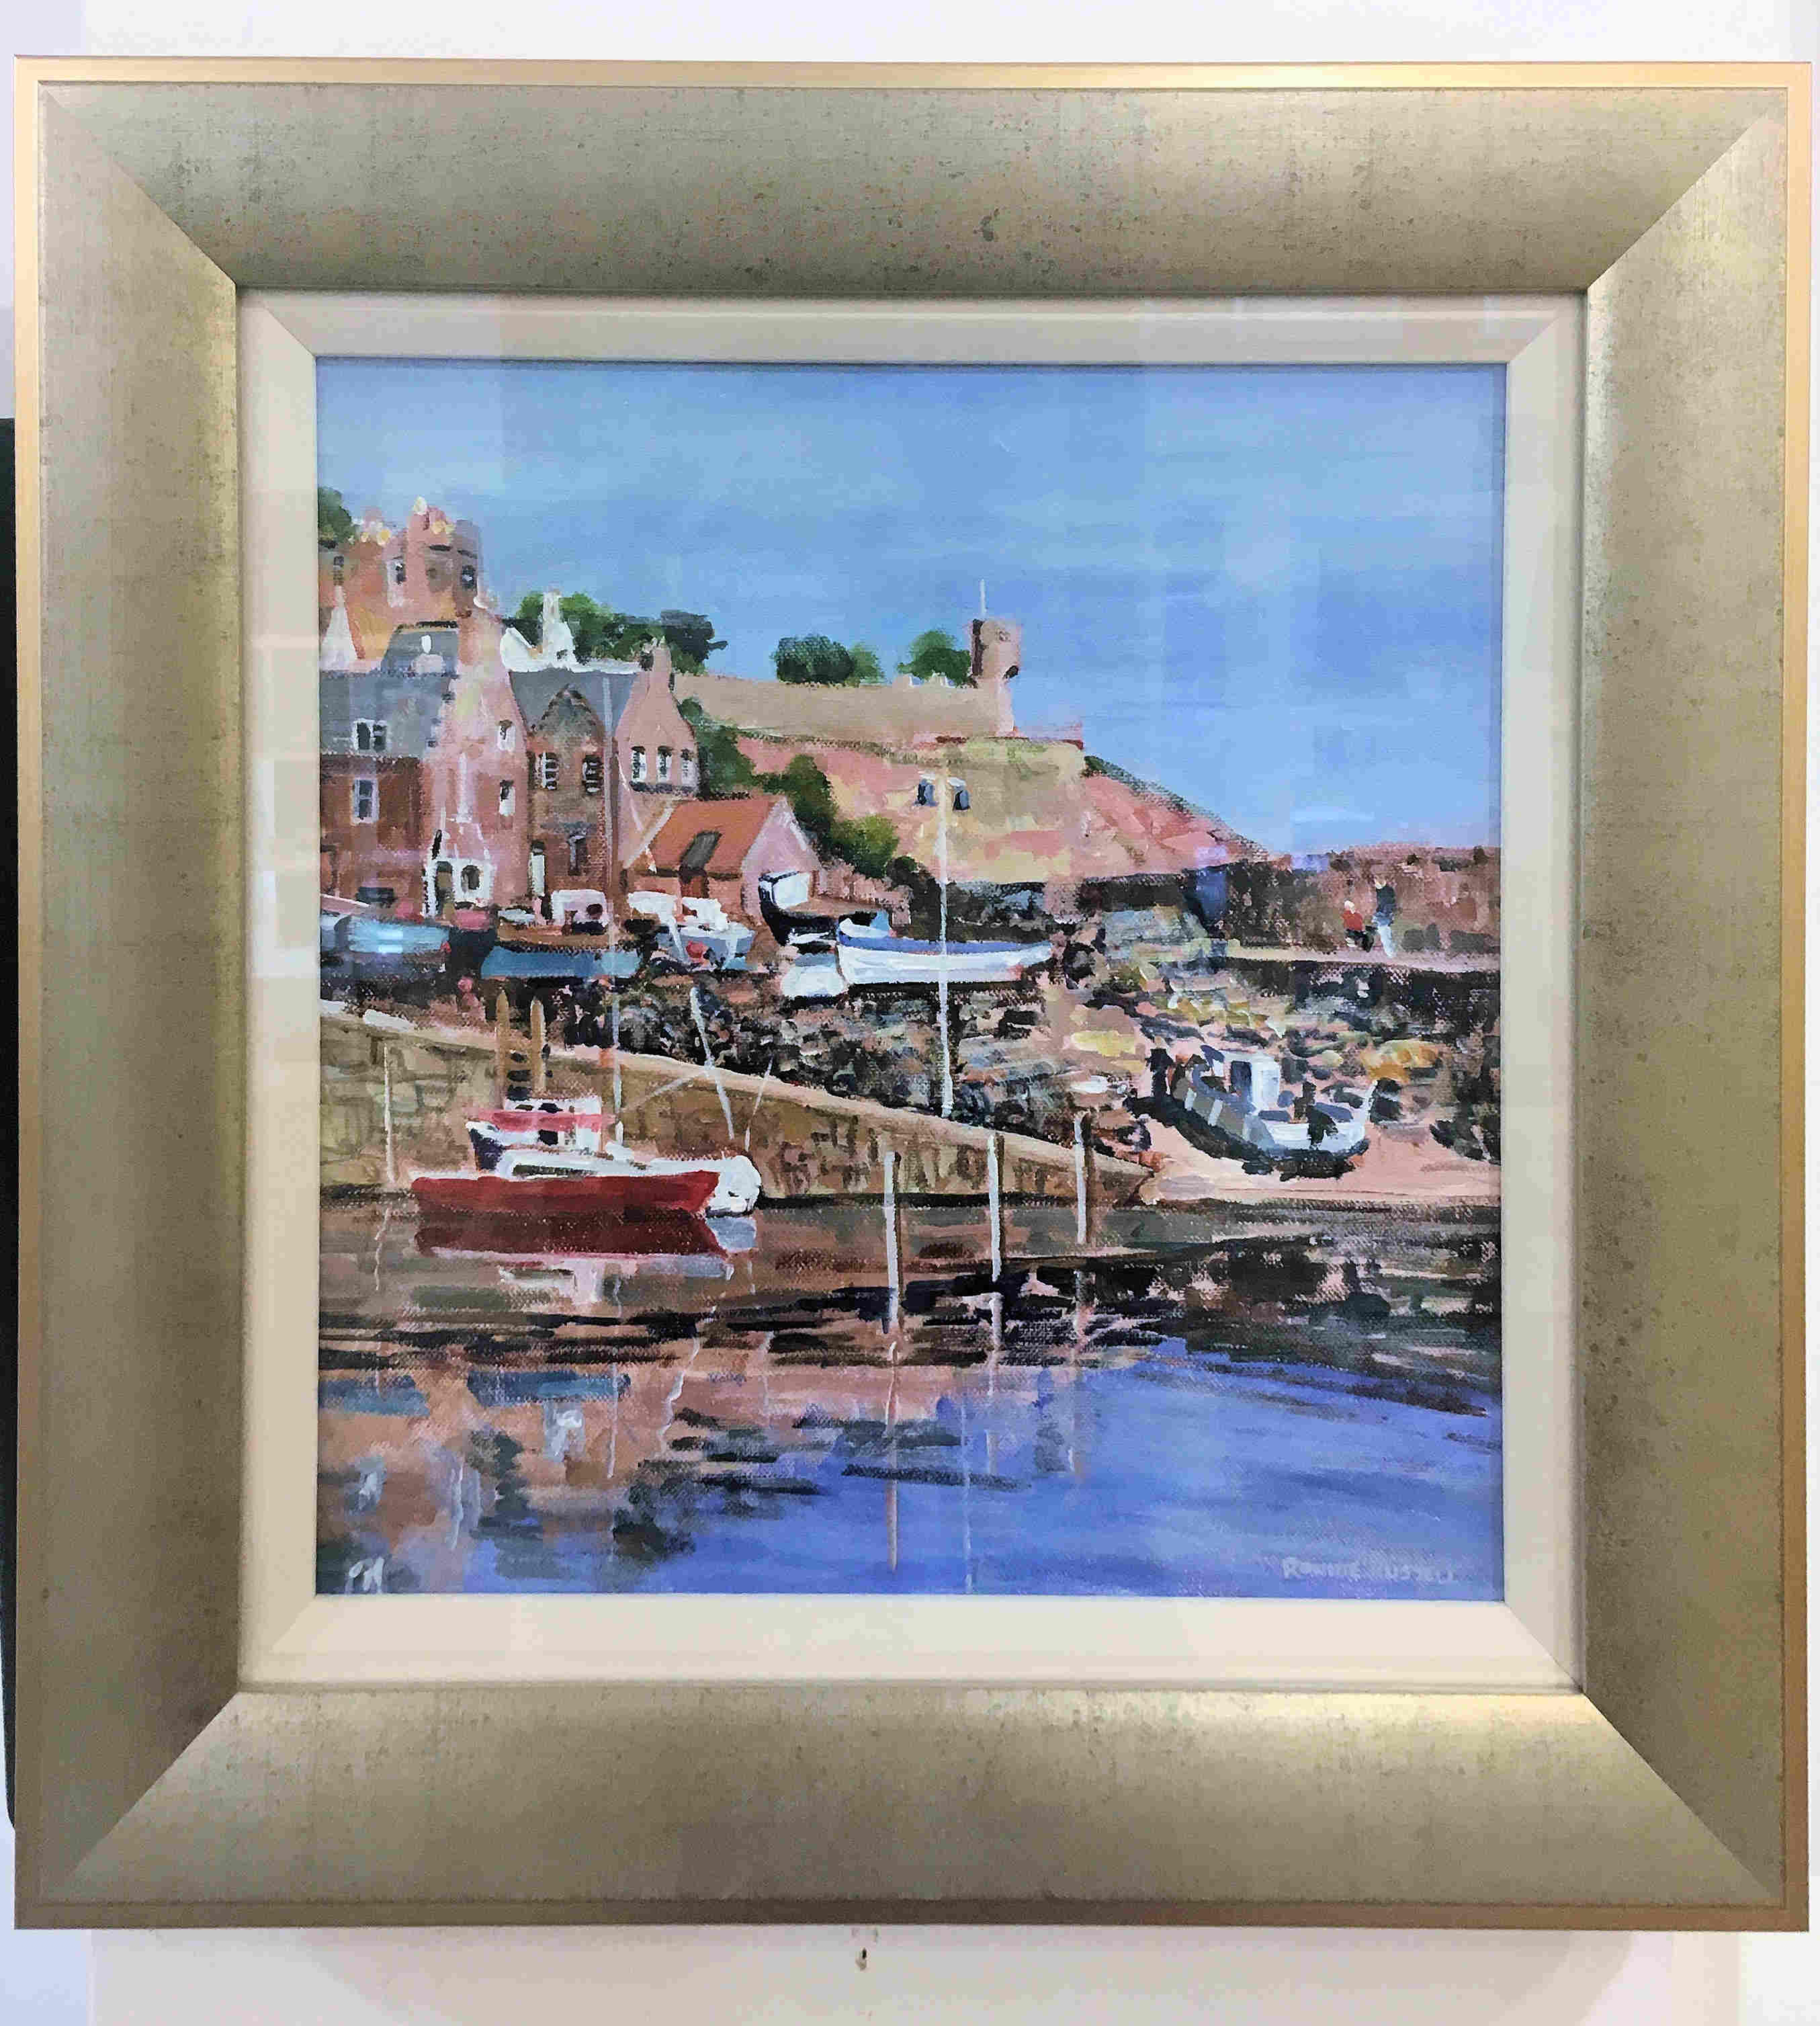 'Still Waters, Crail' by artist Ronnie Russell